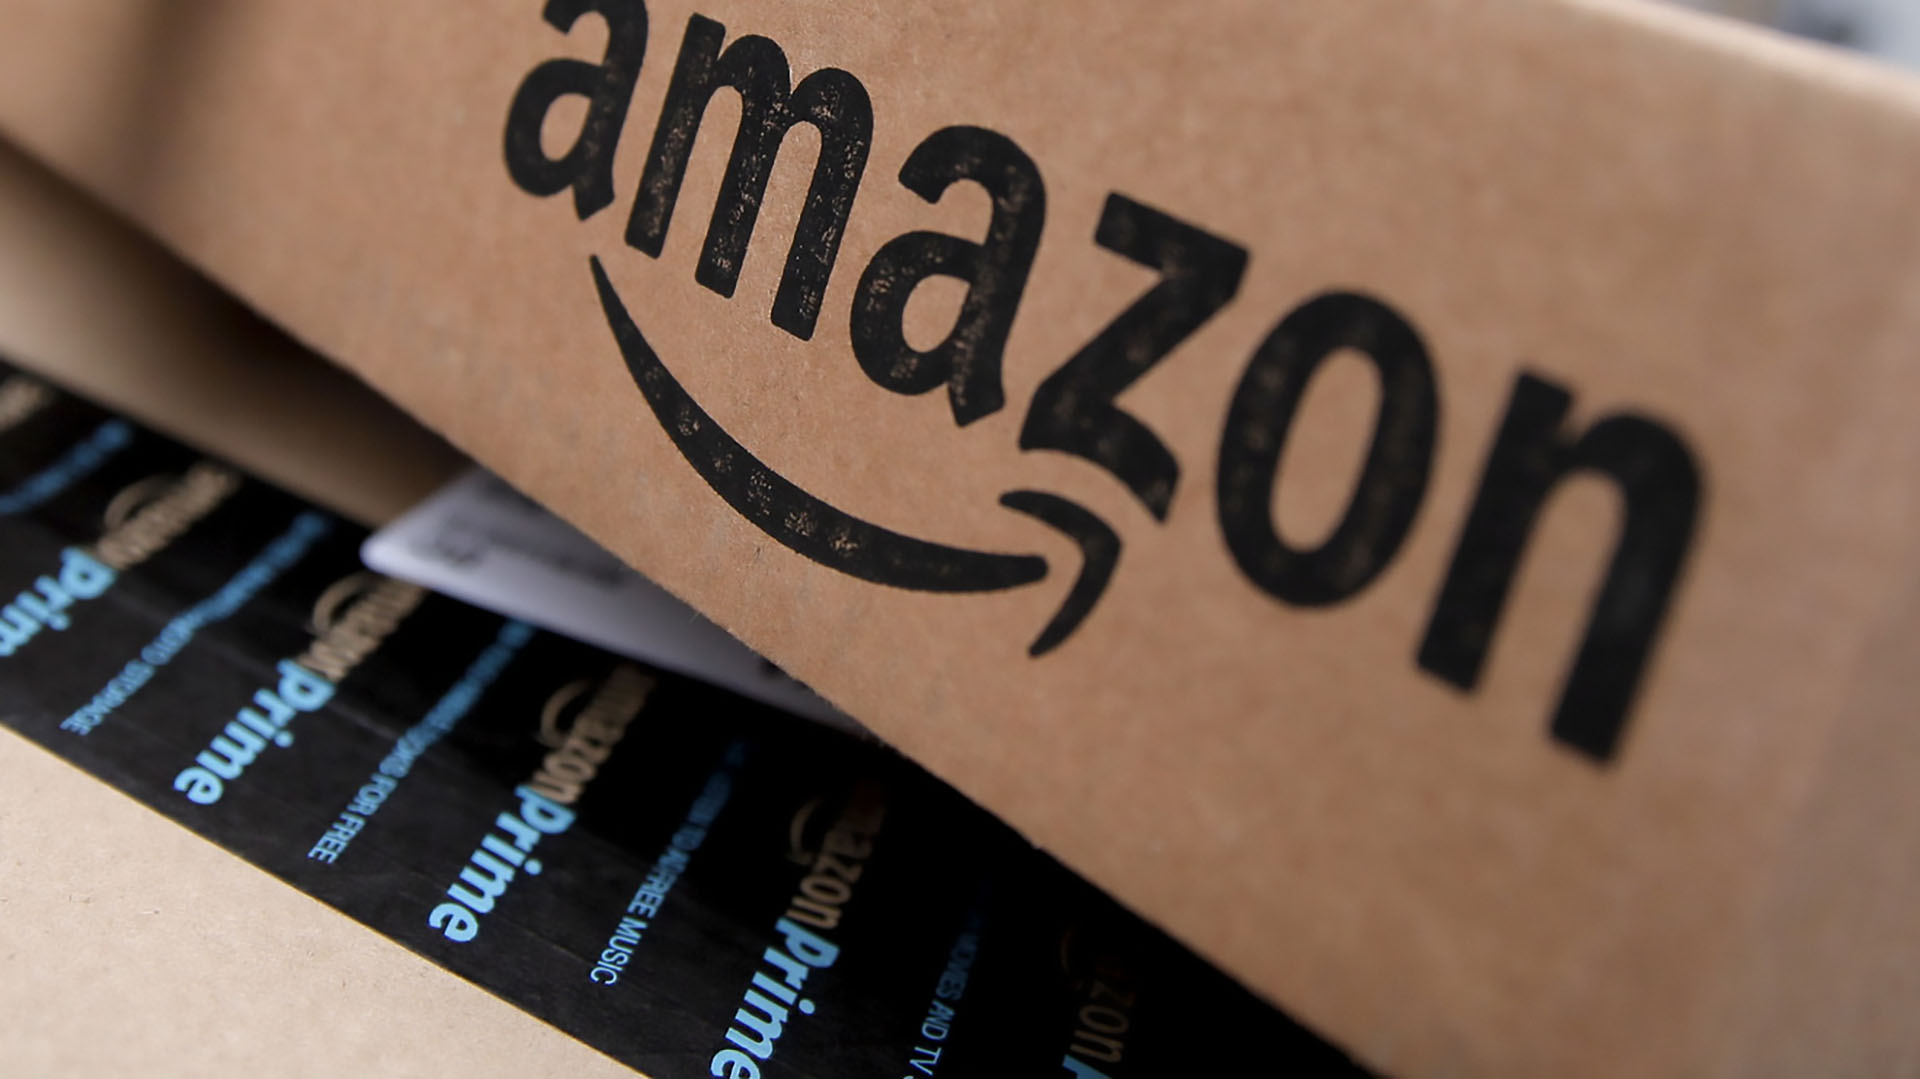 Bitcoin Potentially the Most Lucrative Trading Investment Since Amazon